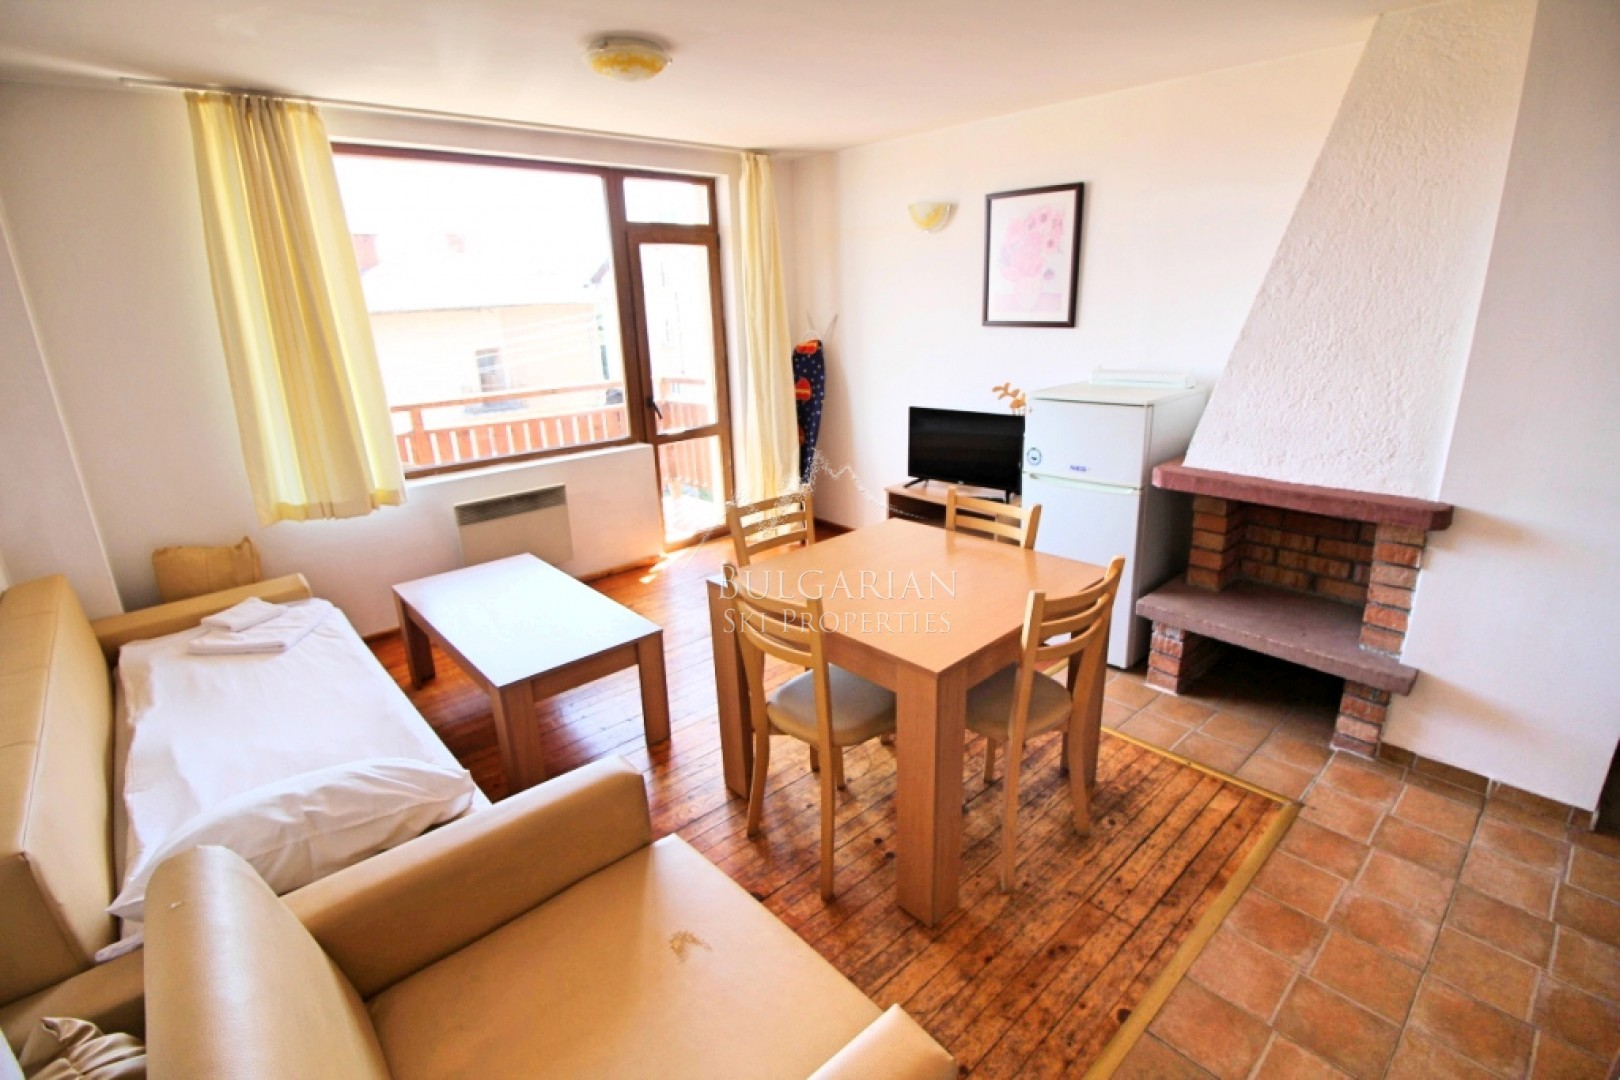 Bansko: bargain one-bedroom apartment for sale